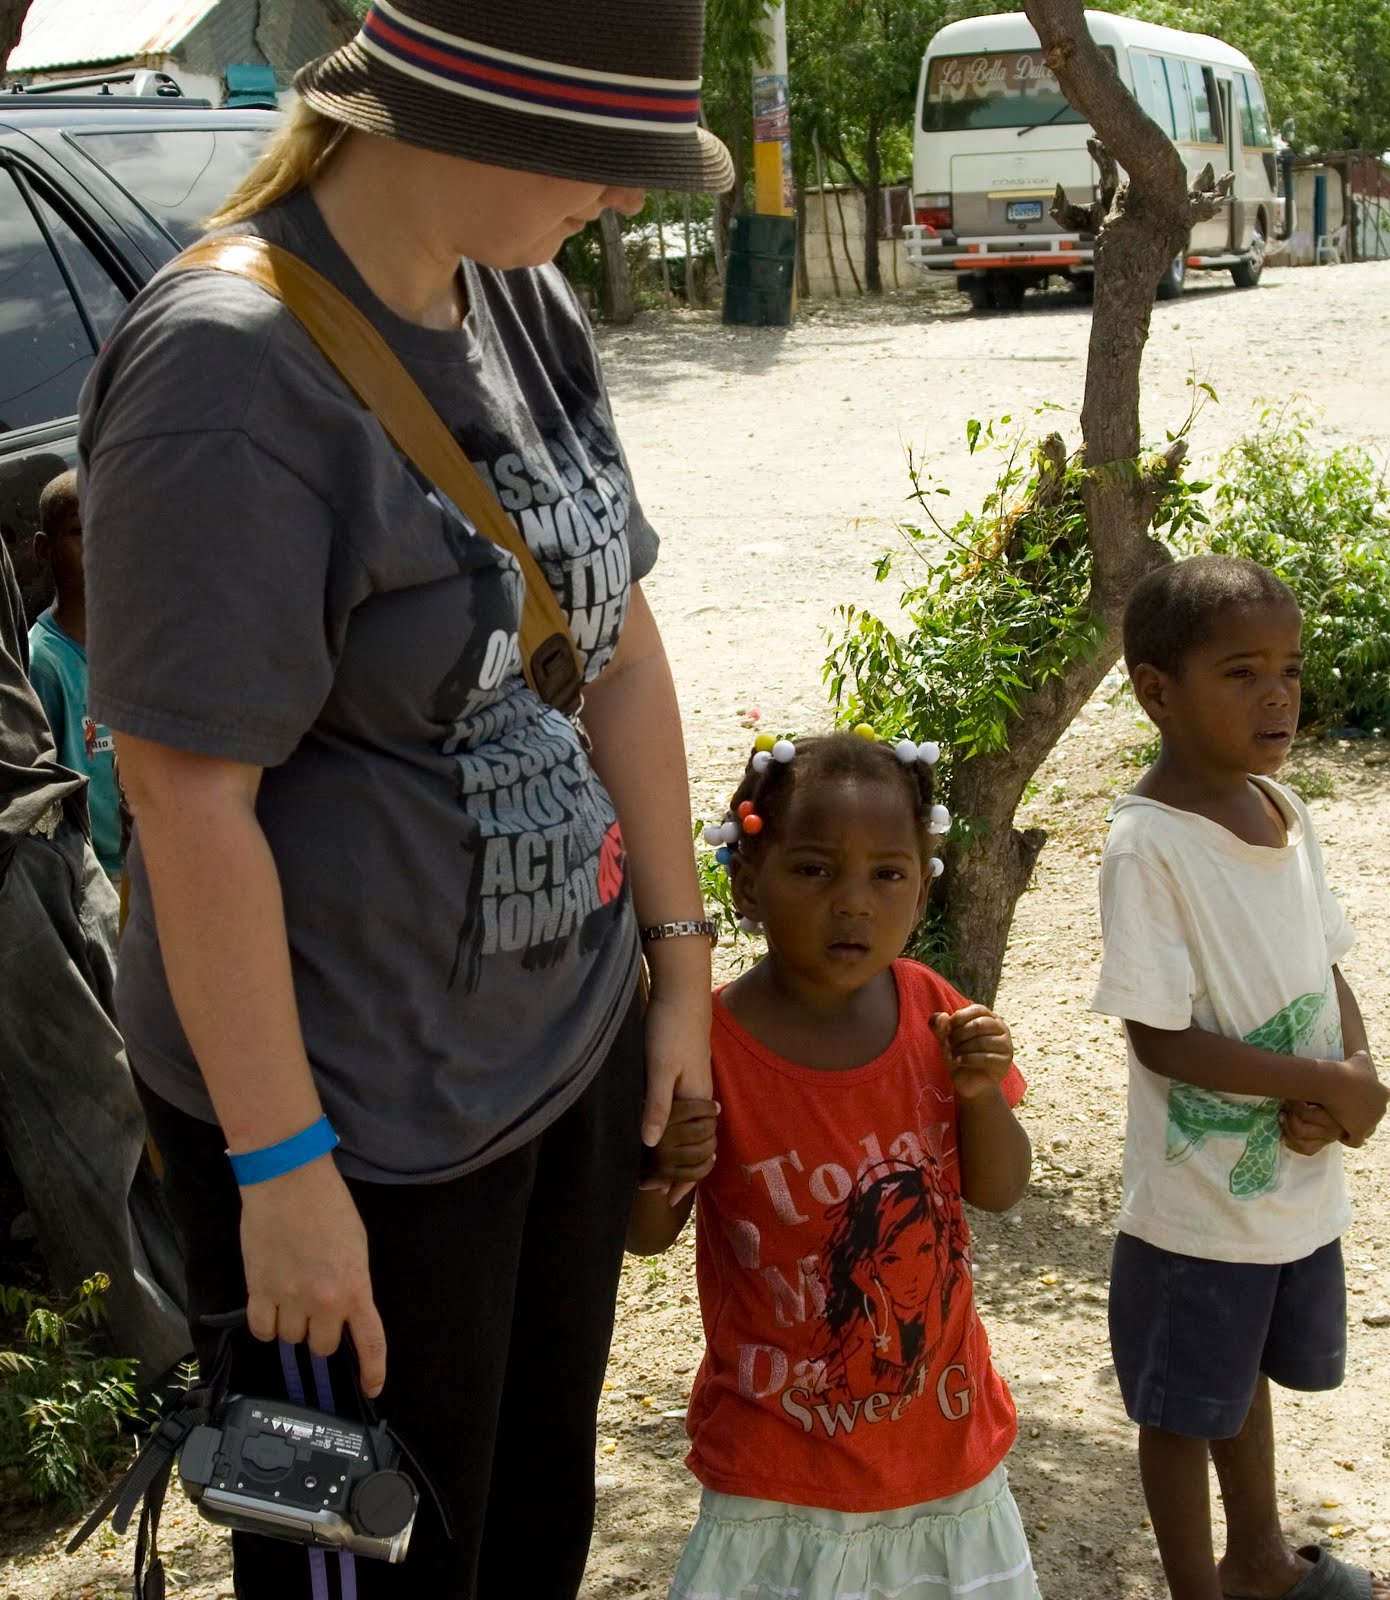 sabana yegua divorced singles La sagrada familia news from and about our family in the dominican republic   families, including single mothers that were renting, offered to put up walls on a plot  sabana yegua, with the building finishing in september 2011 of course, all the.